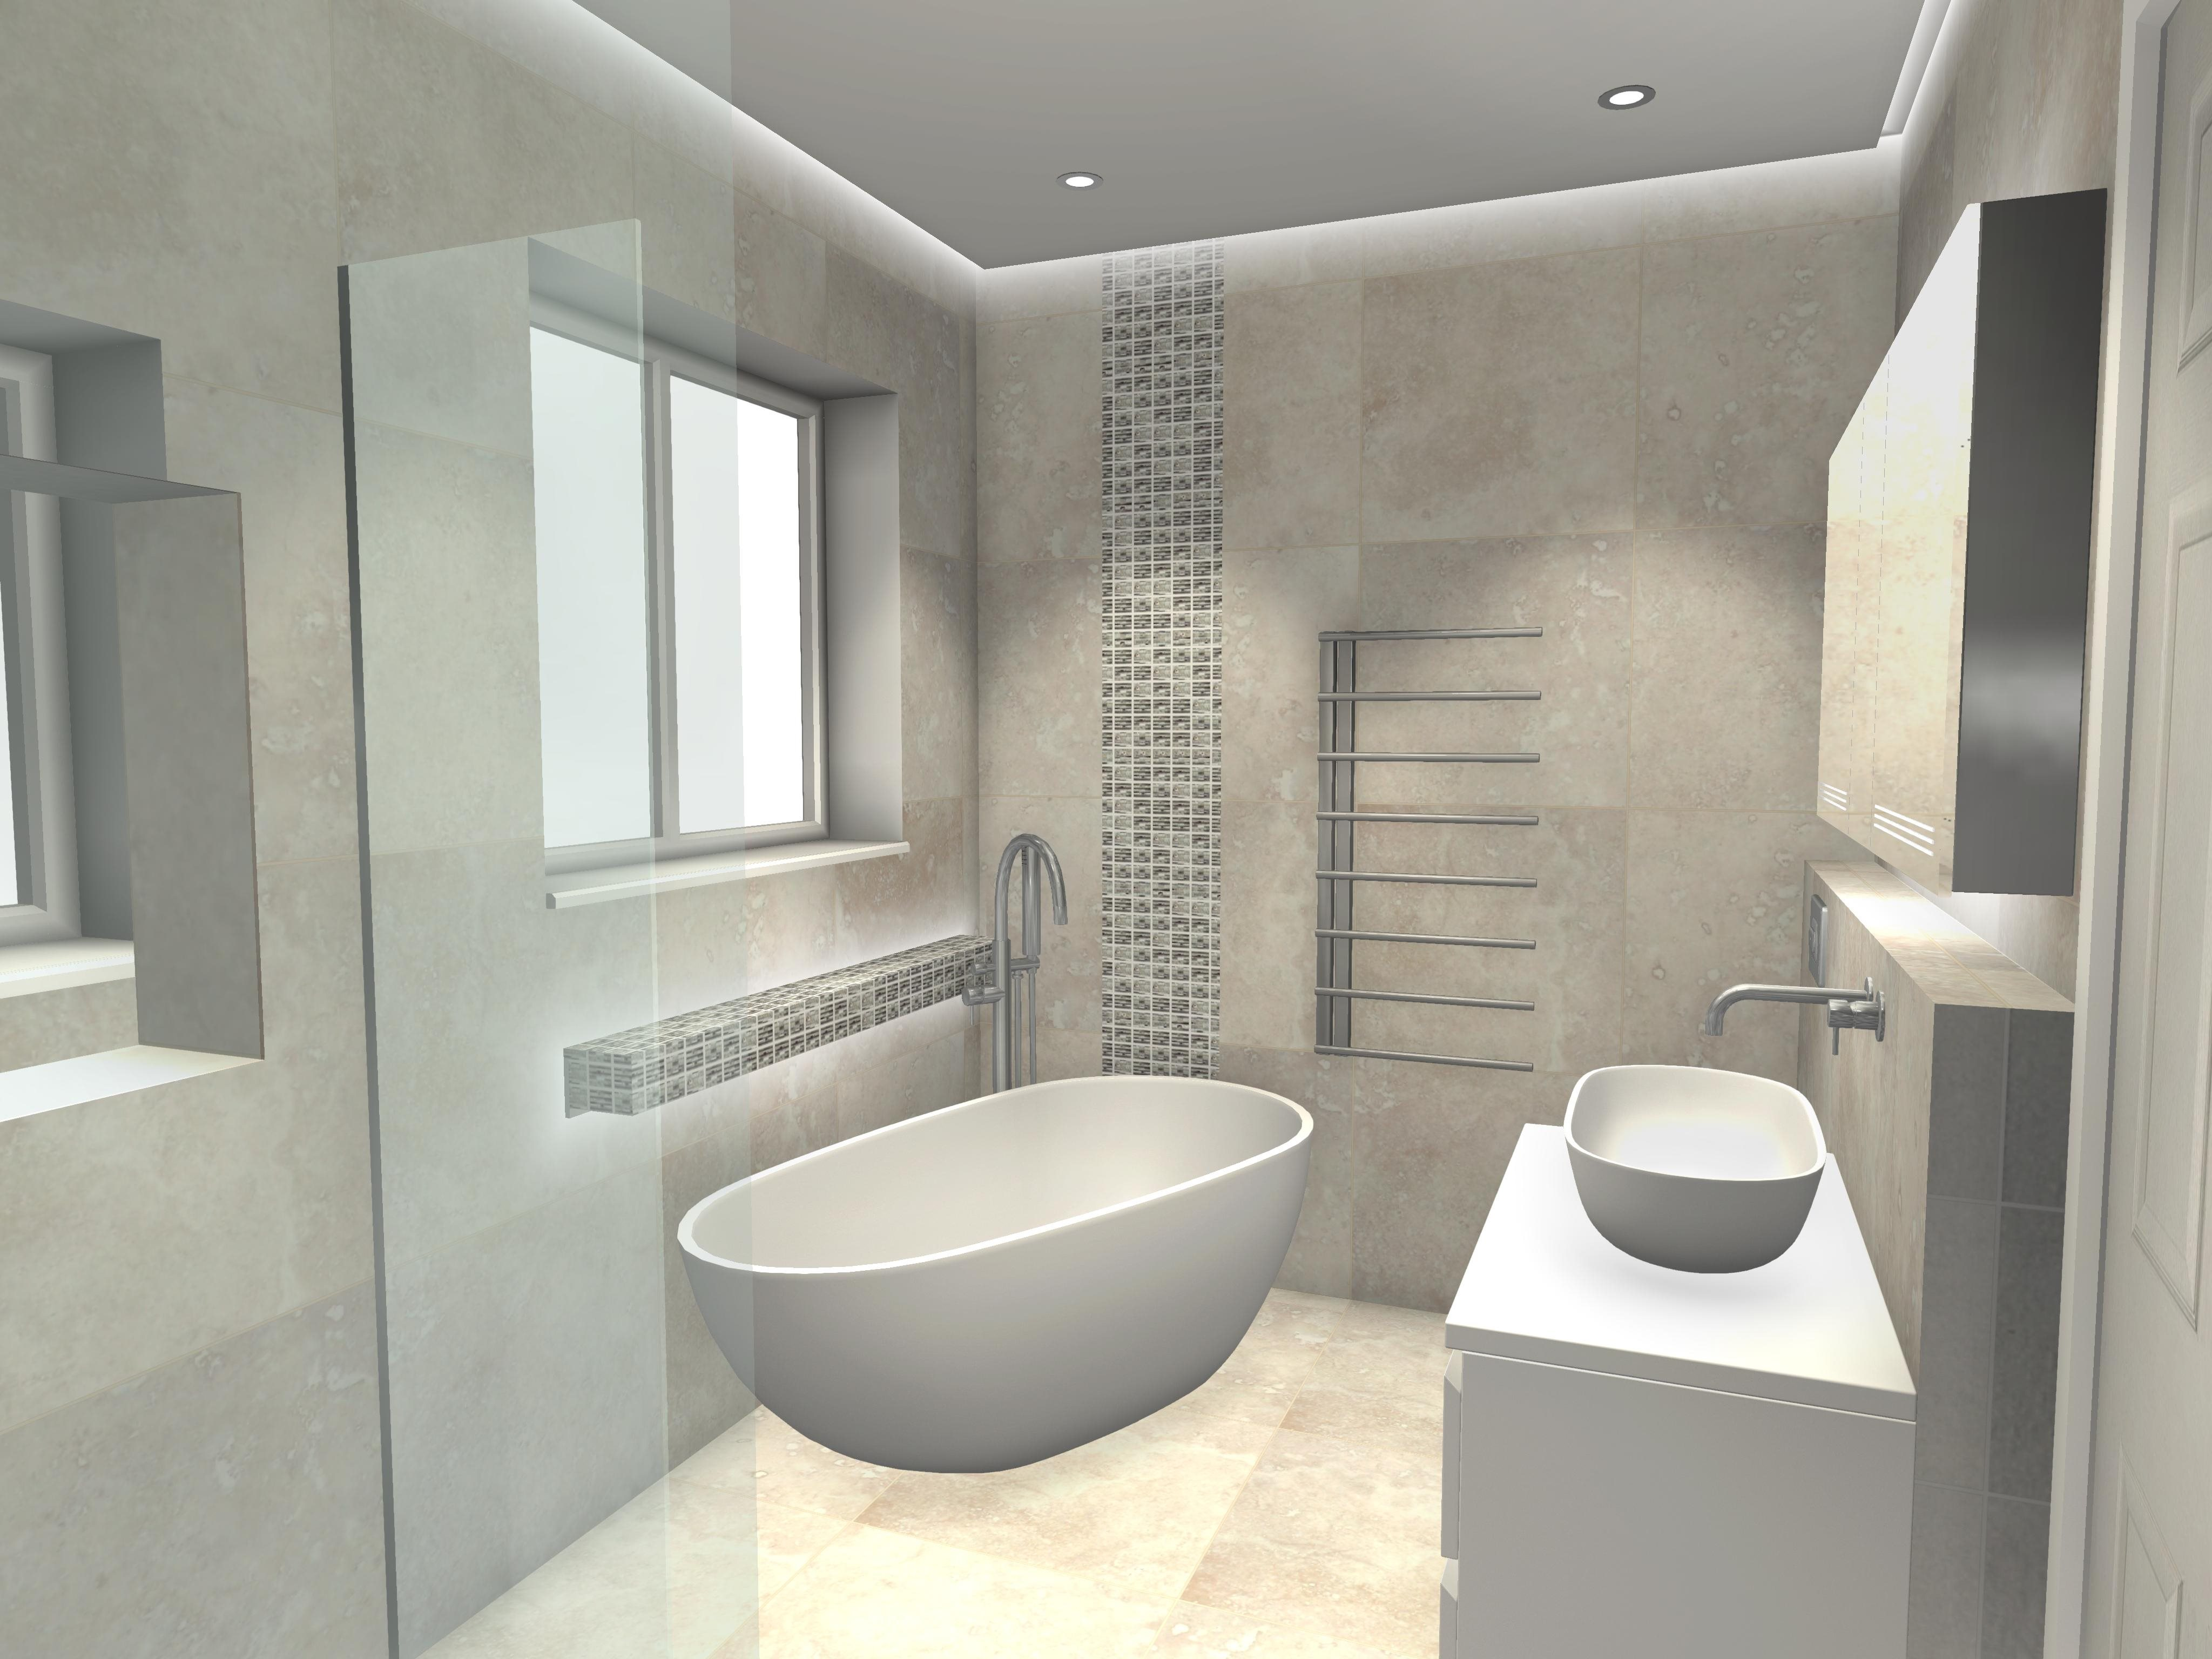 Our Design Of The Week Acknowledges Practical Demands Family Bathroom Without Ever Compromising Its Contemporary Good Looks